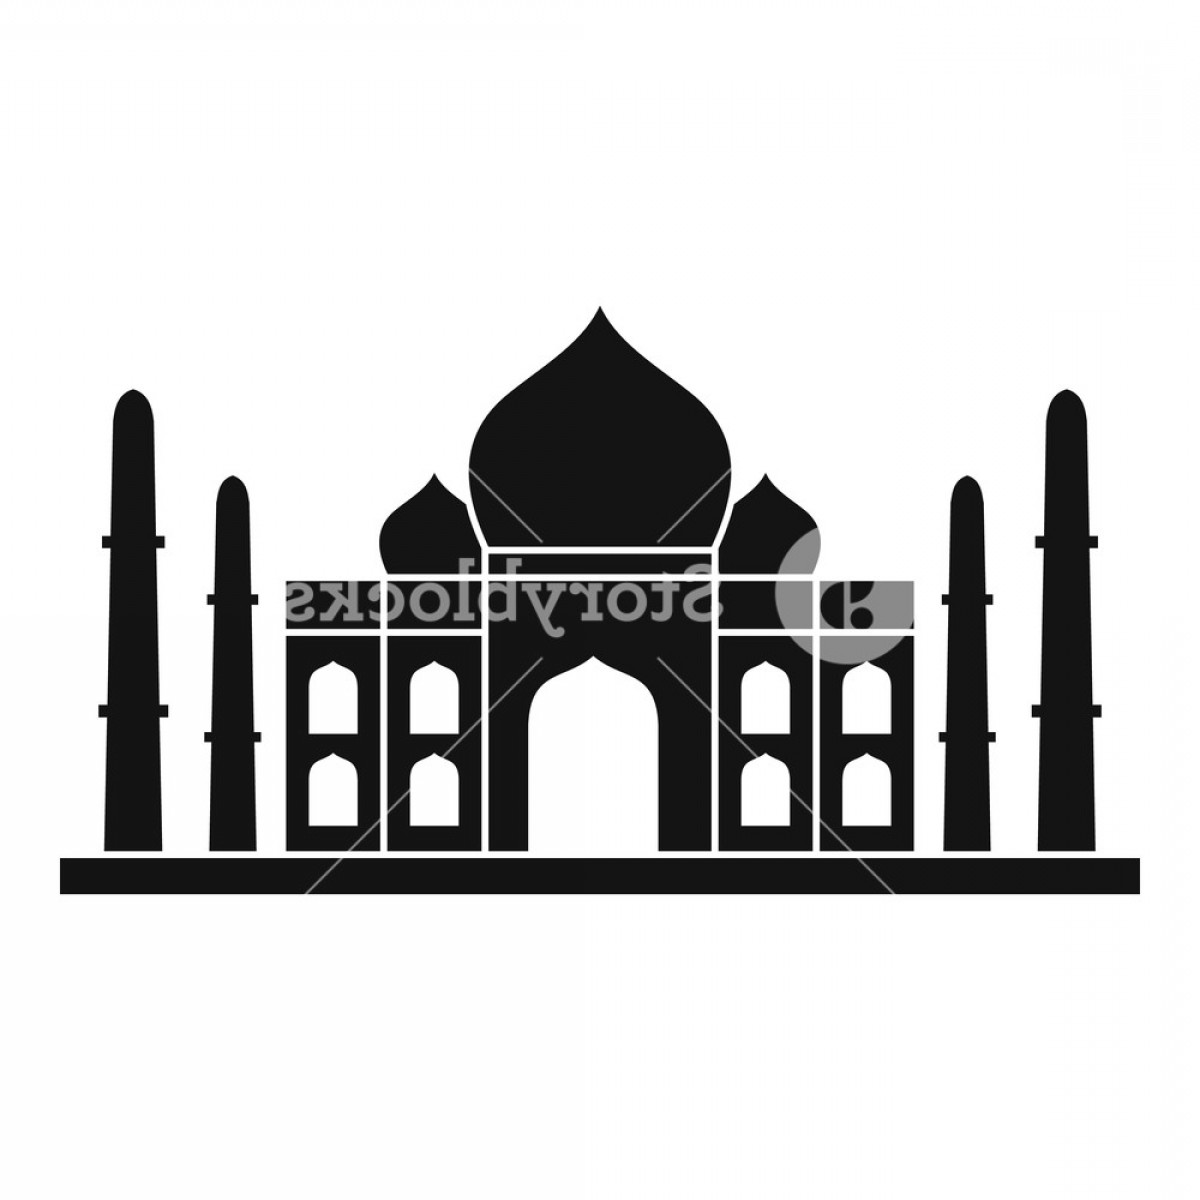 Taj Mahal Vector: Taj Mahal Icon Simple Illustration Of Taj Mahal Vector Icon For Web Huvlmwr Gmjhzacnj